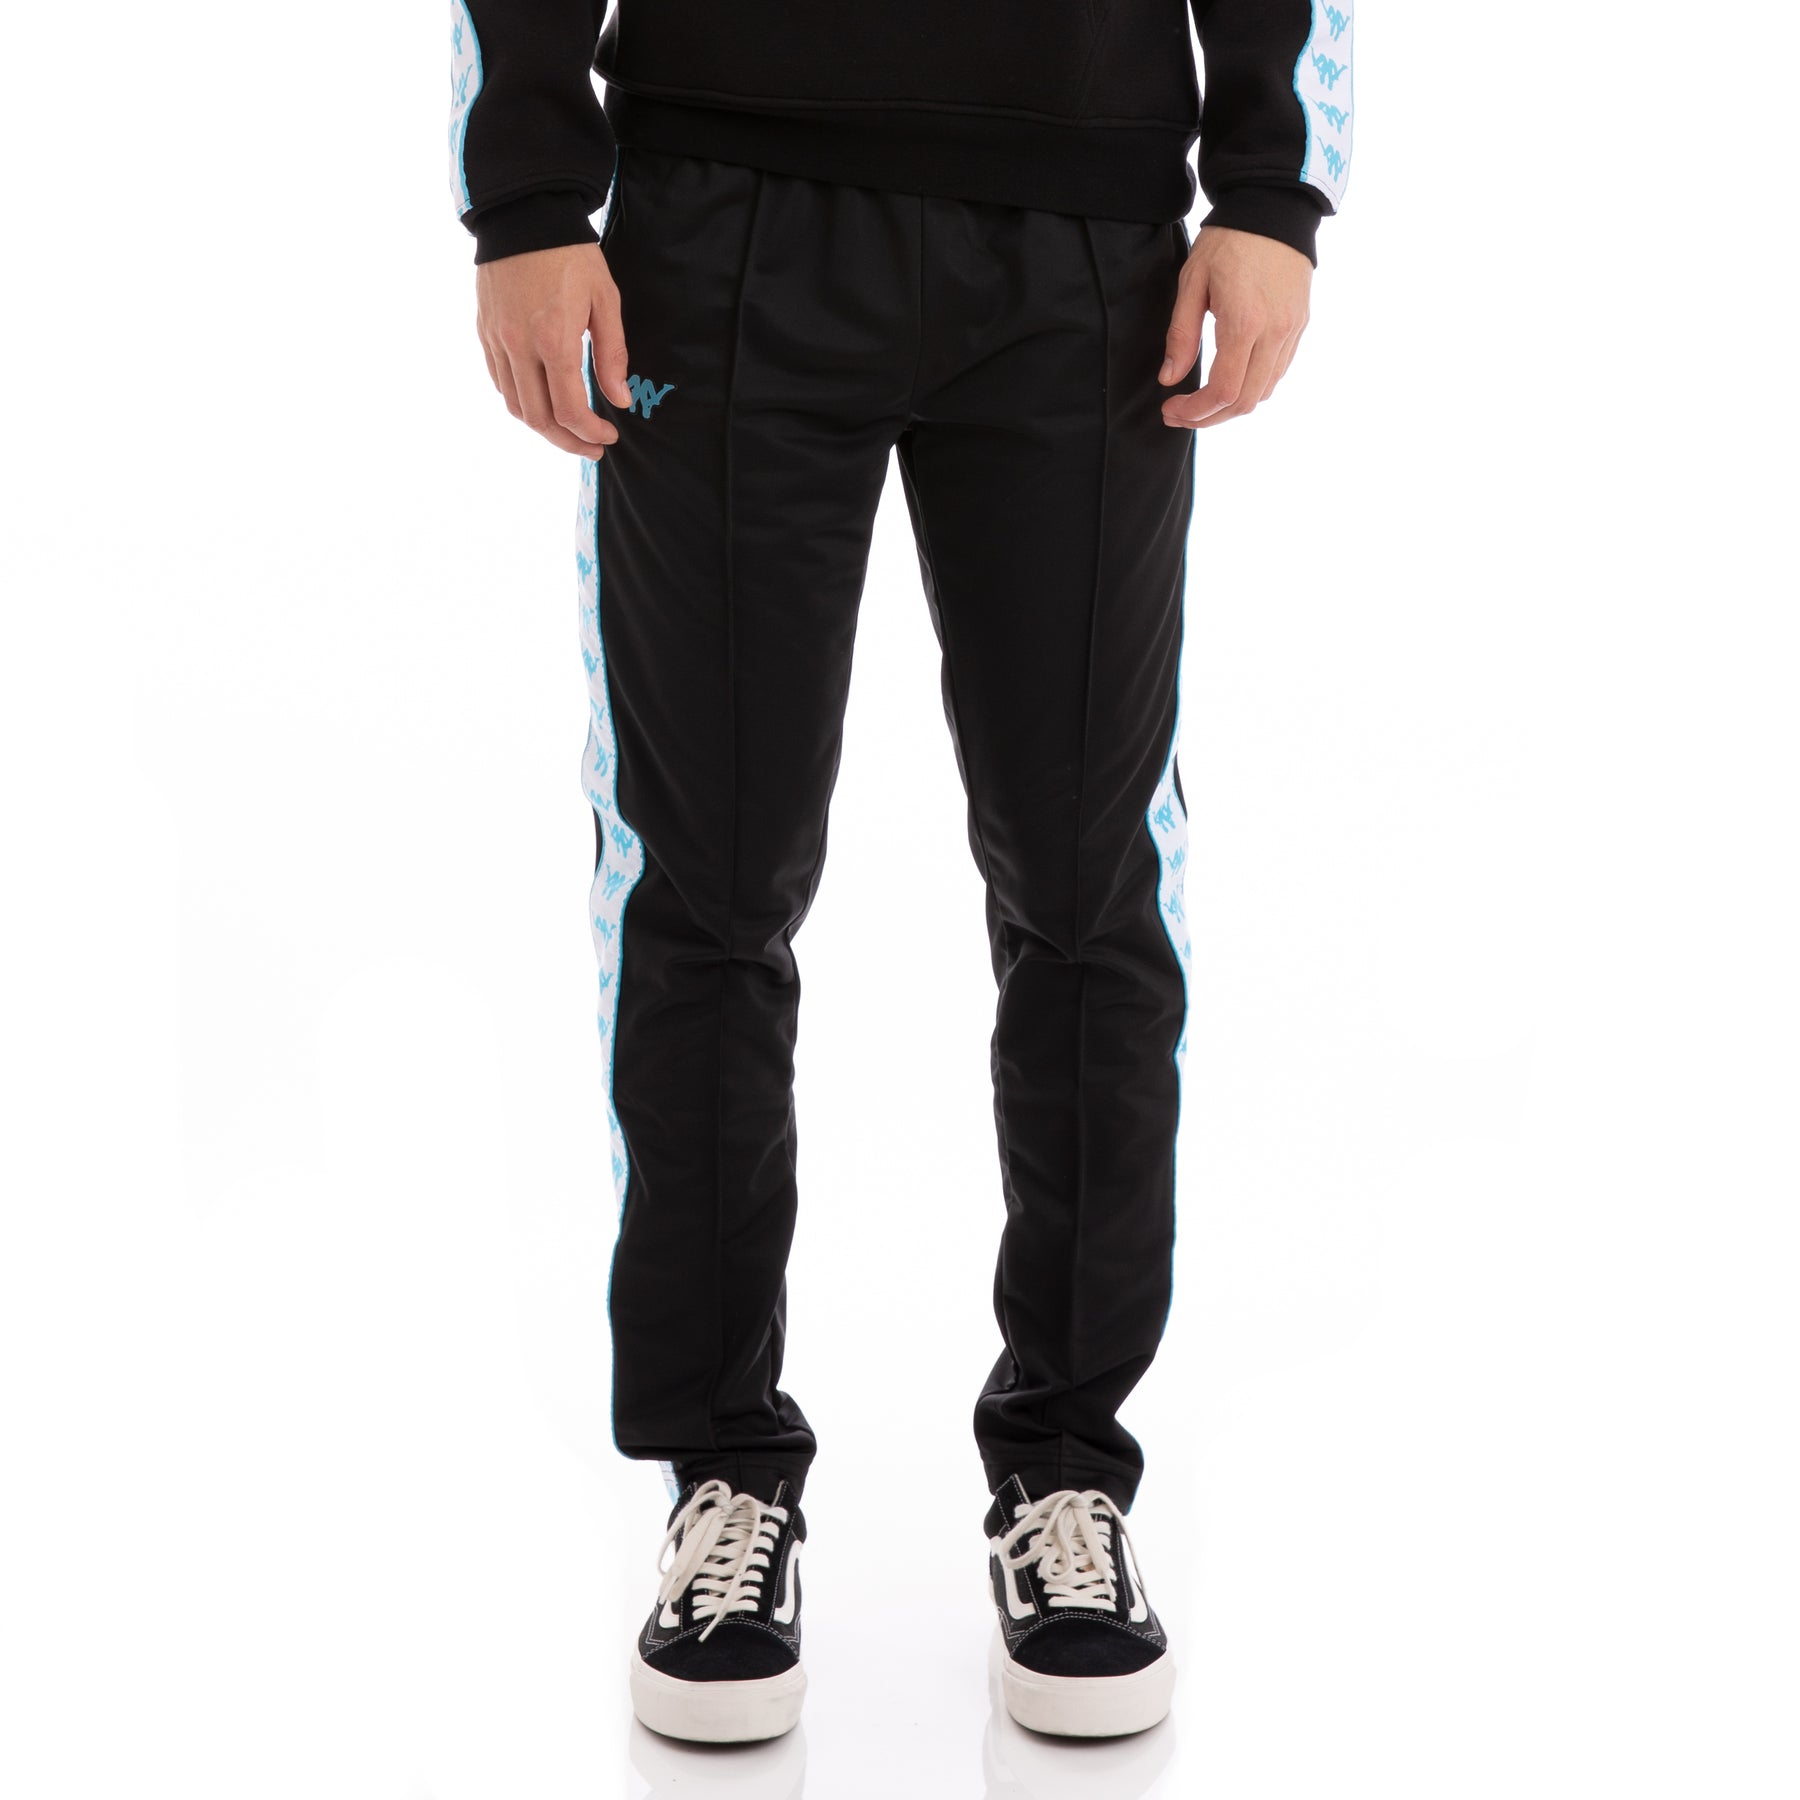 b87ba8b9f8 Authentic Bascile Up & Down Black White Turquoise Trackpants – Kappa USA